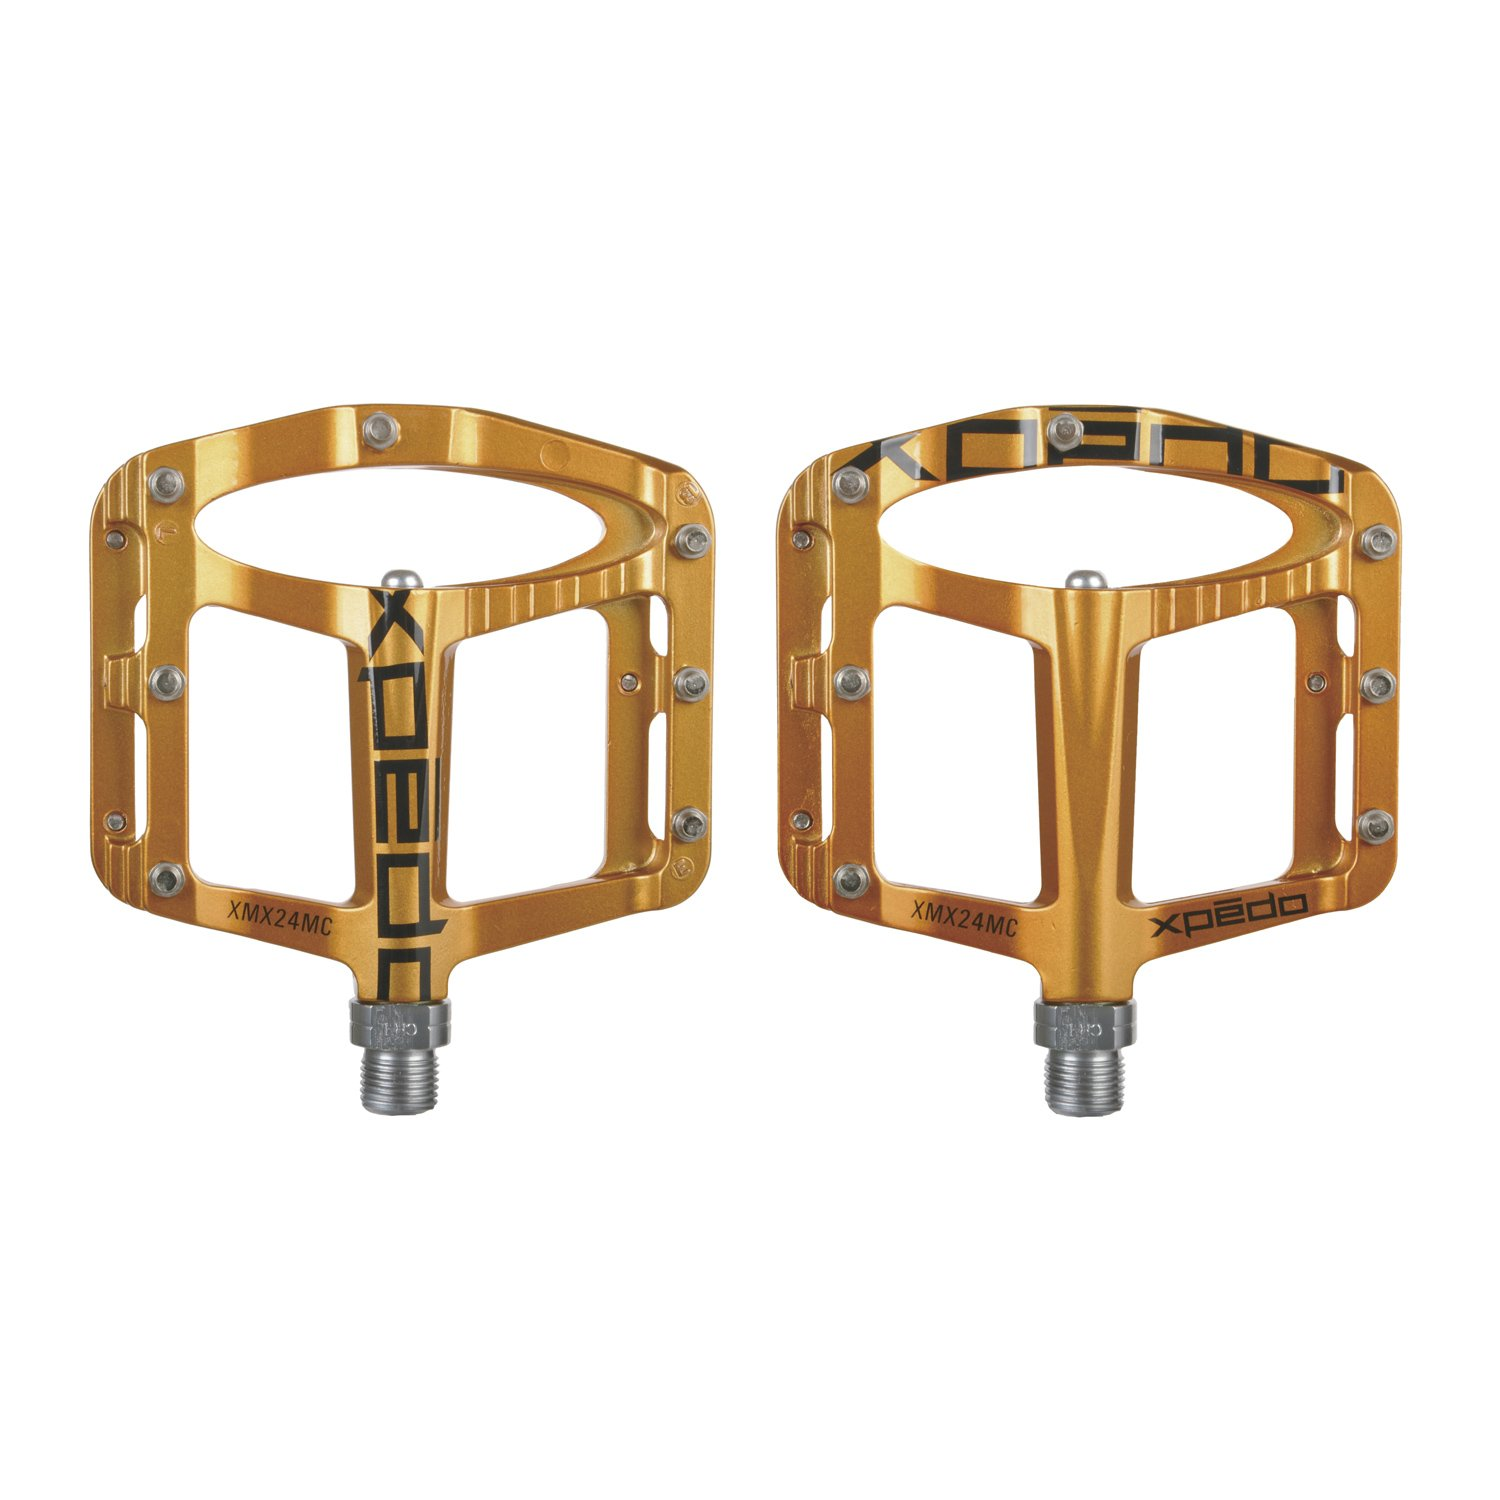 Xpedo Spry Bike Platform Pedal Gold by Xpedo